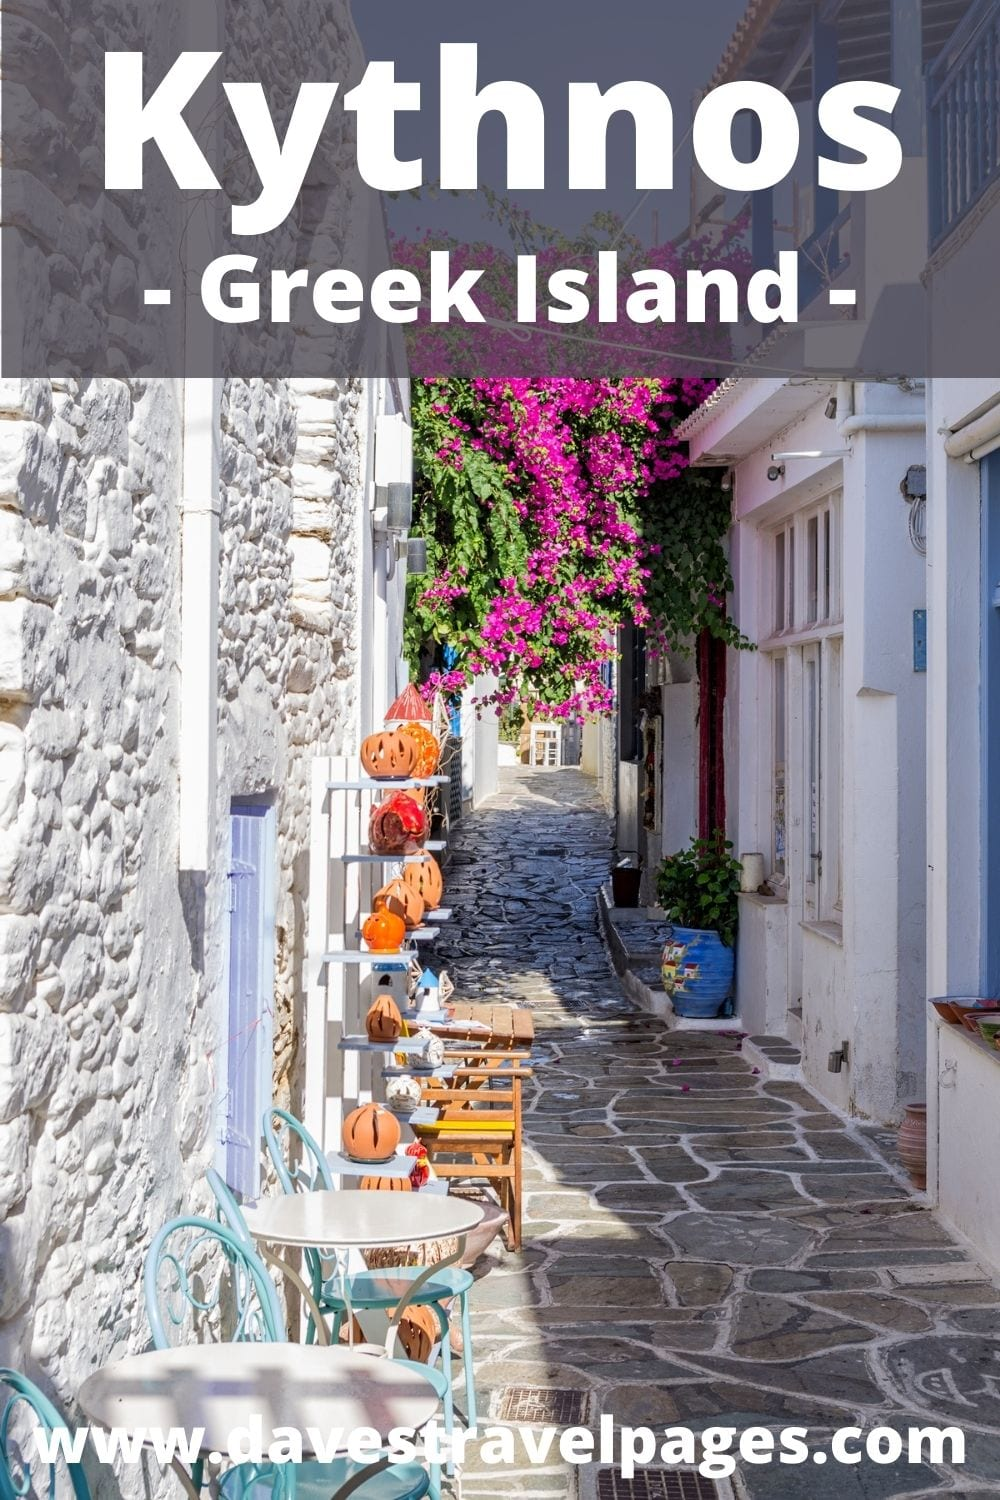 How to get from Mykonos to Kythnos island in Greece